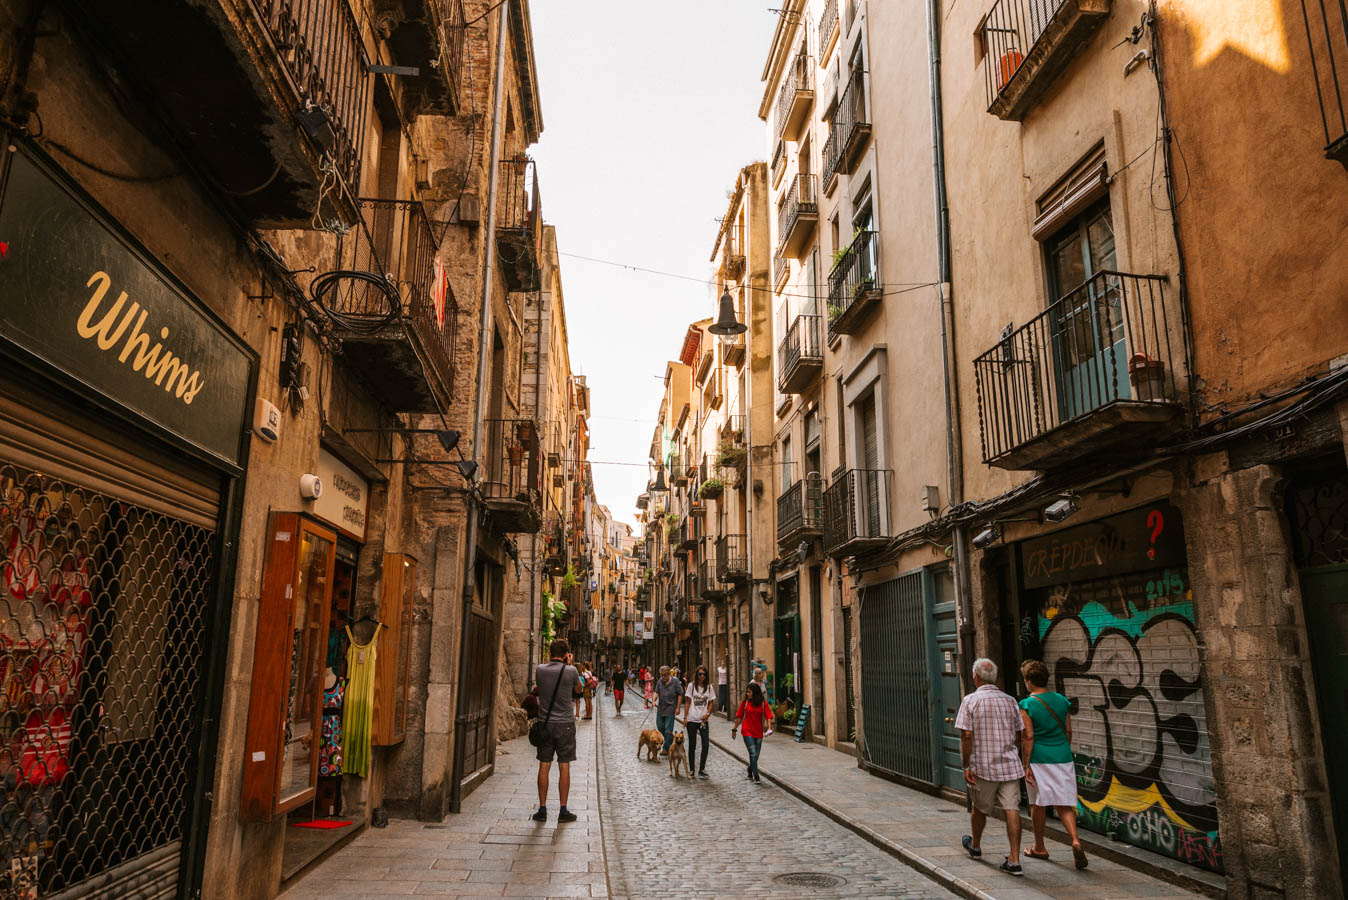 Girona is a great place to have a weekend trip from Barcelona